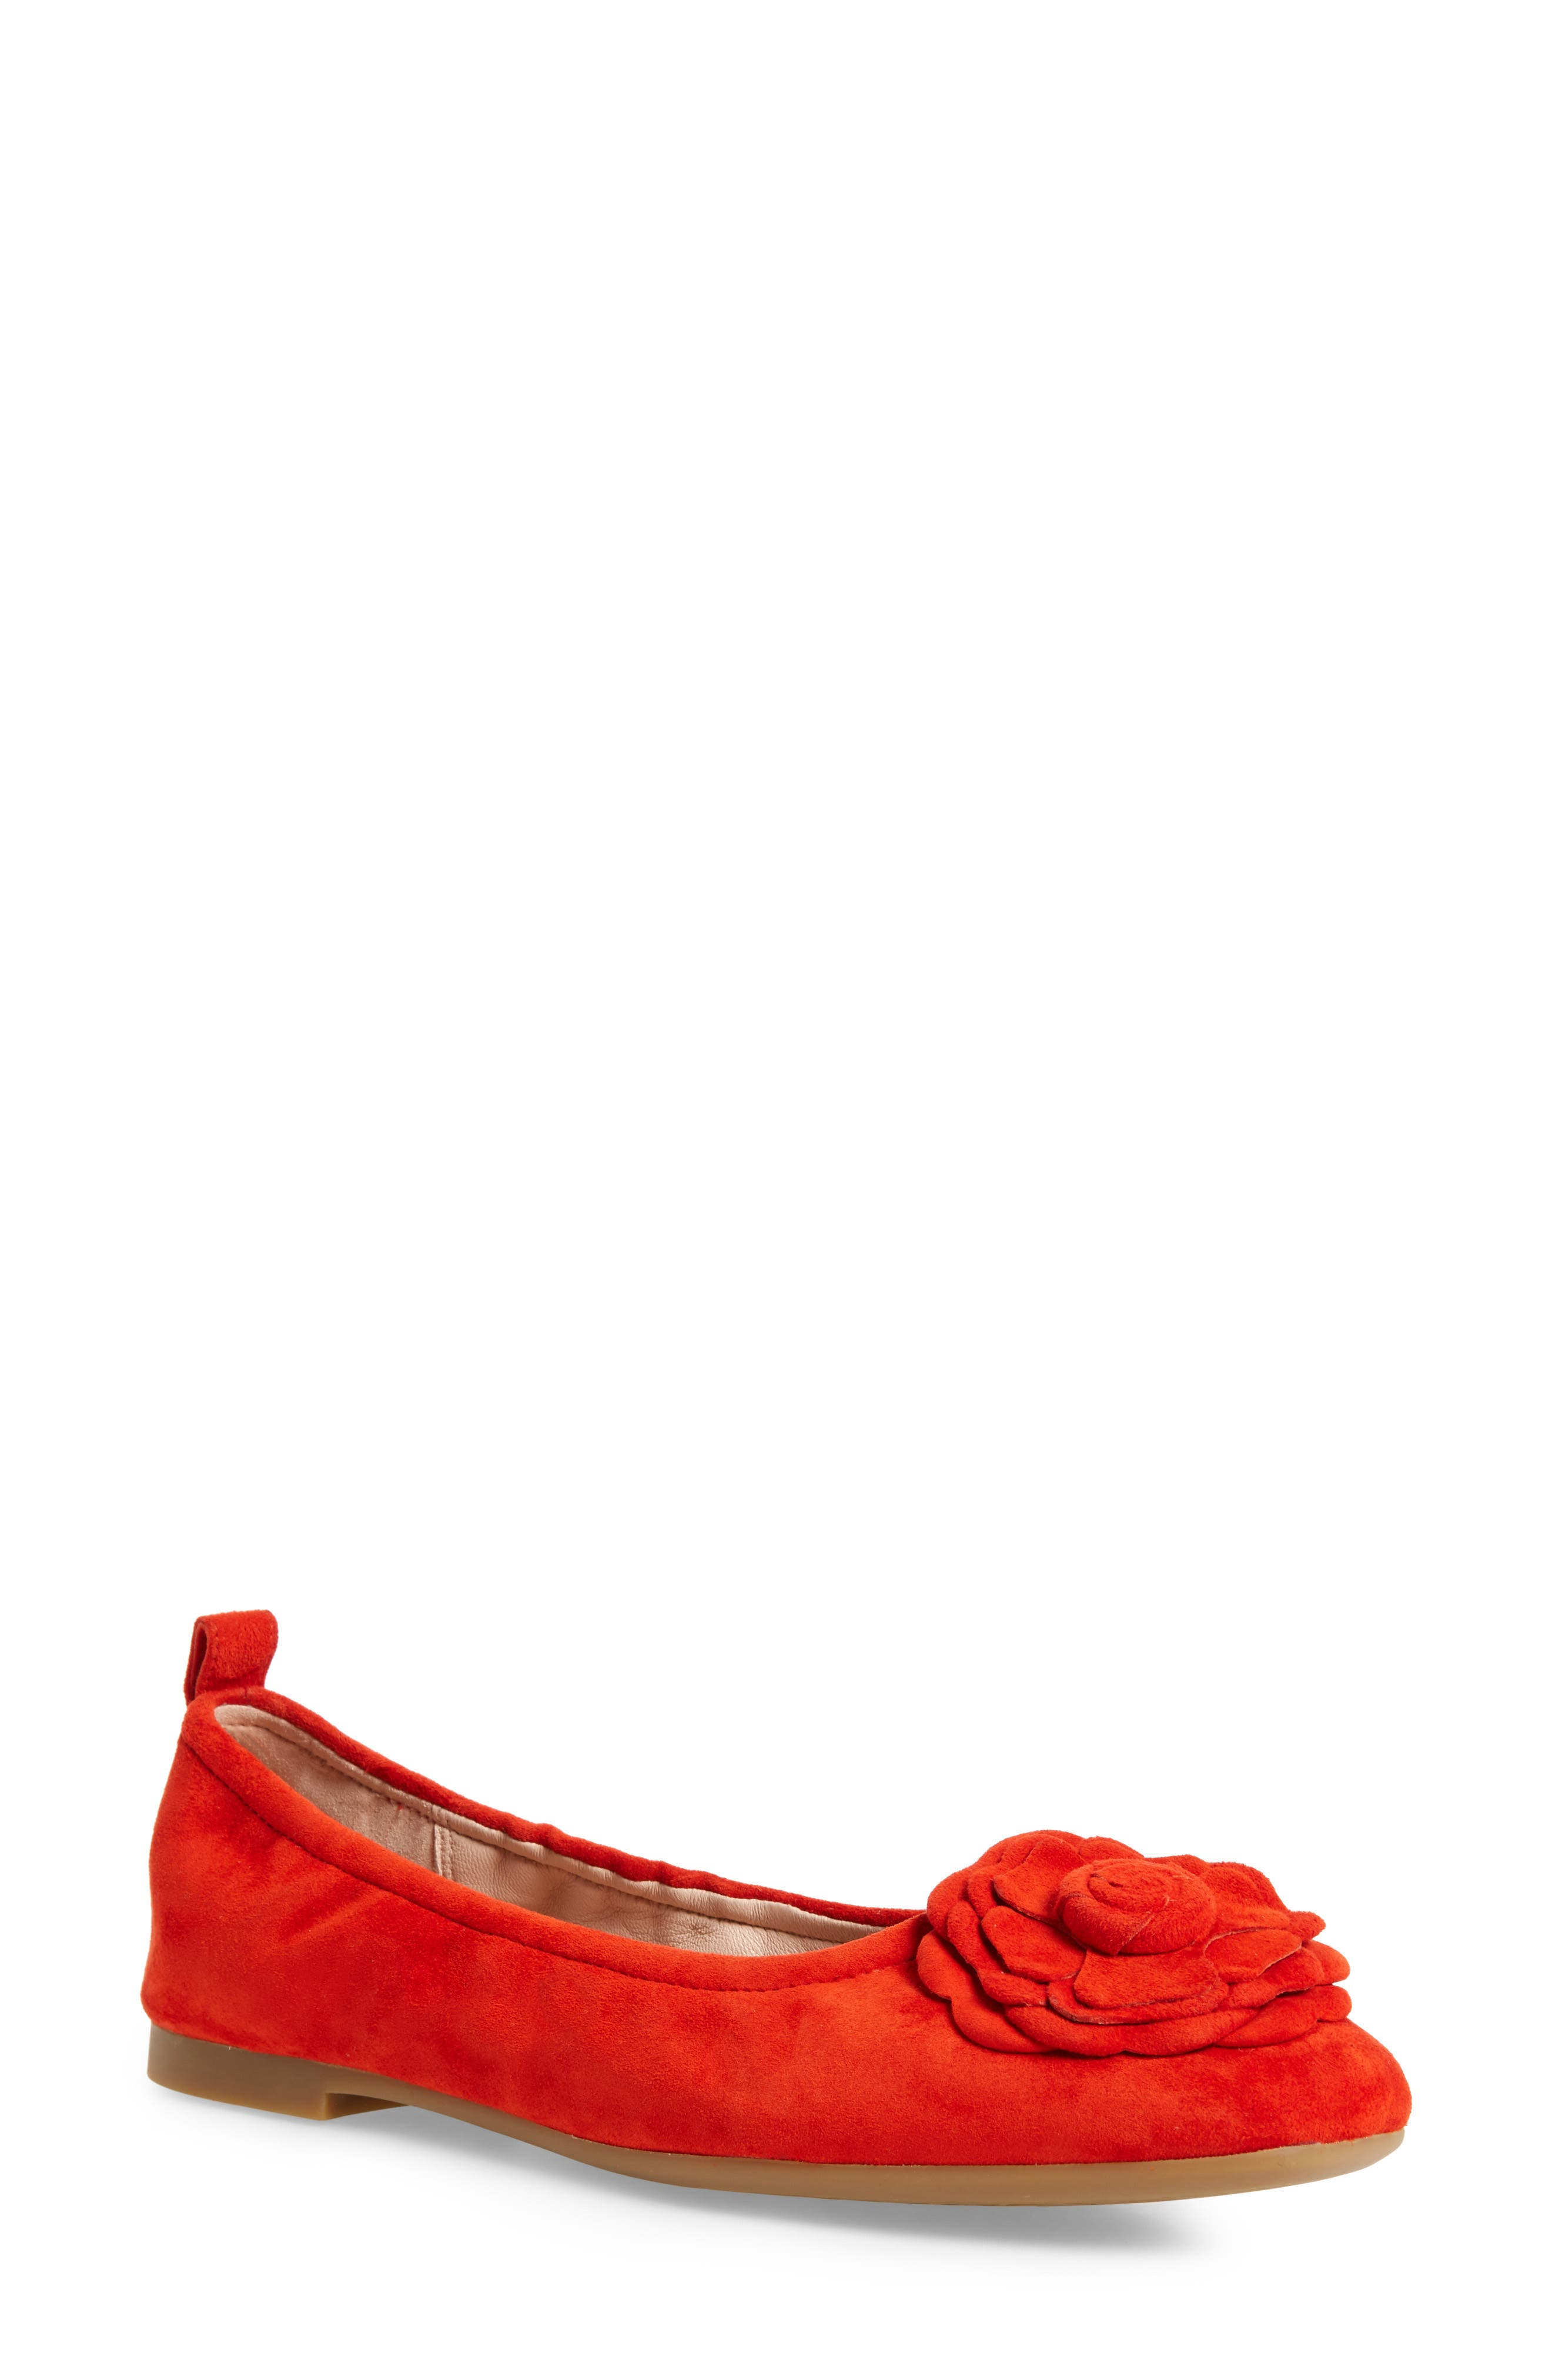 Rosalyn Ballet Flat,                         Main,                         color, Spicy Suede